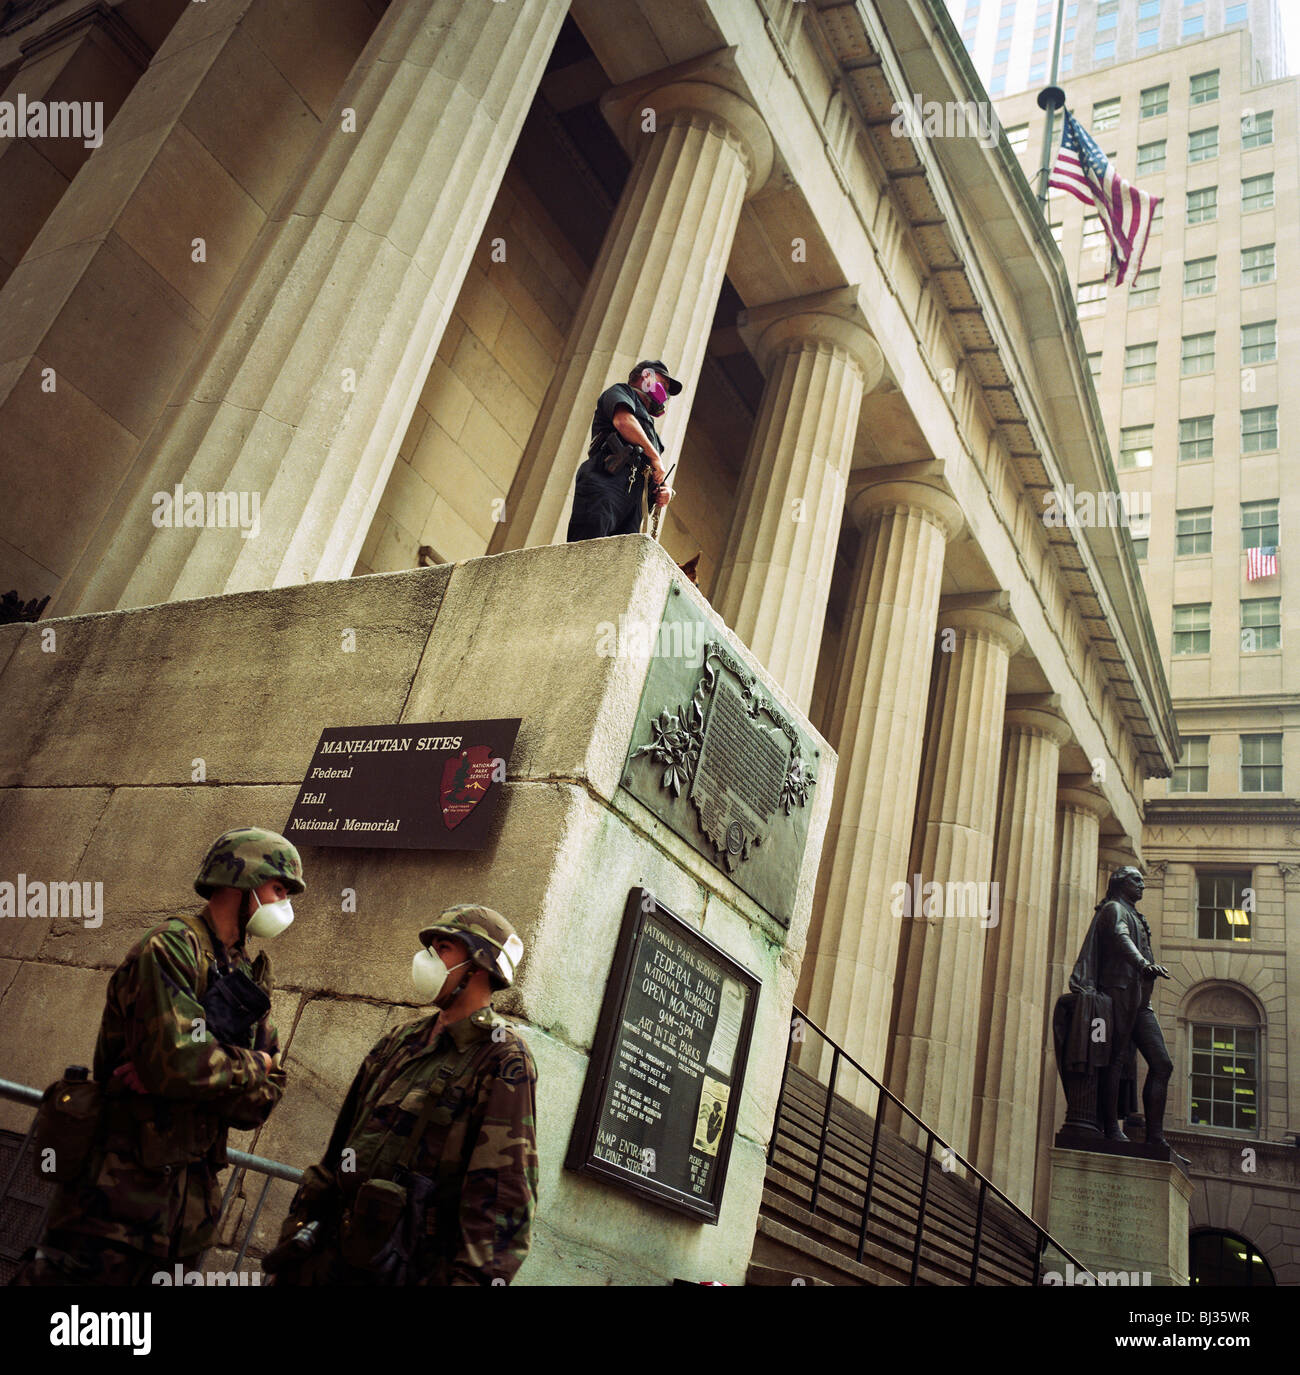 Soldiers of the National Guard wear dust masks and guard the high columns of the Federal Hall on Wall Street. - Stock Image